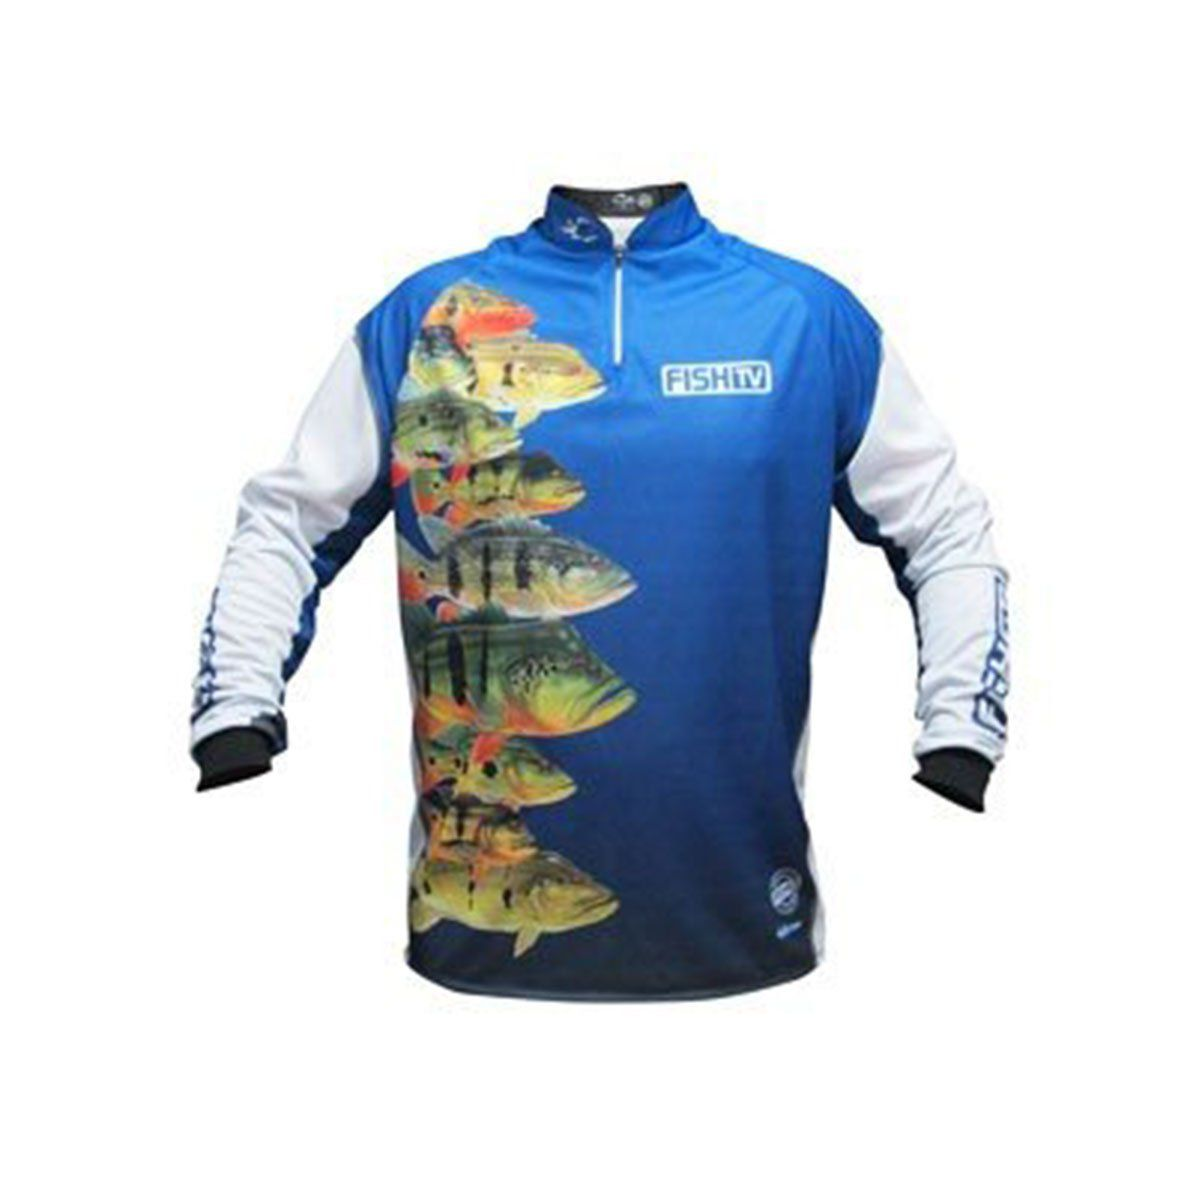 Camisa Faca na Rede Fish TV Tucunare Prot UV FPS 50 LC03